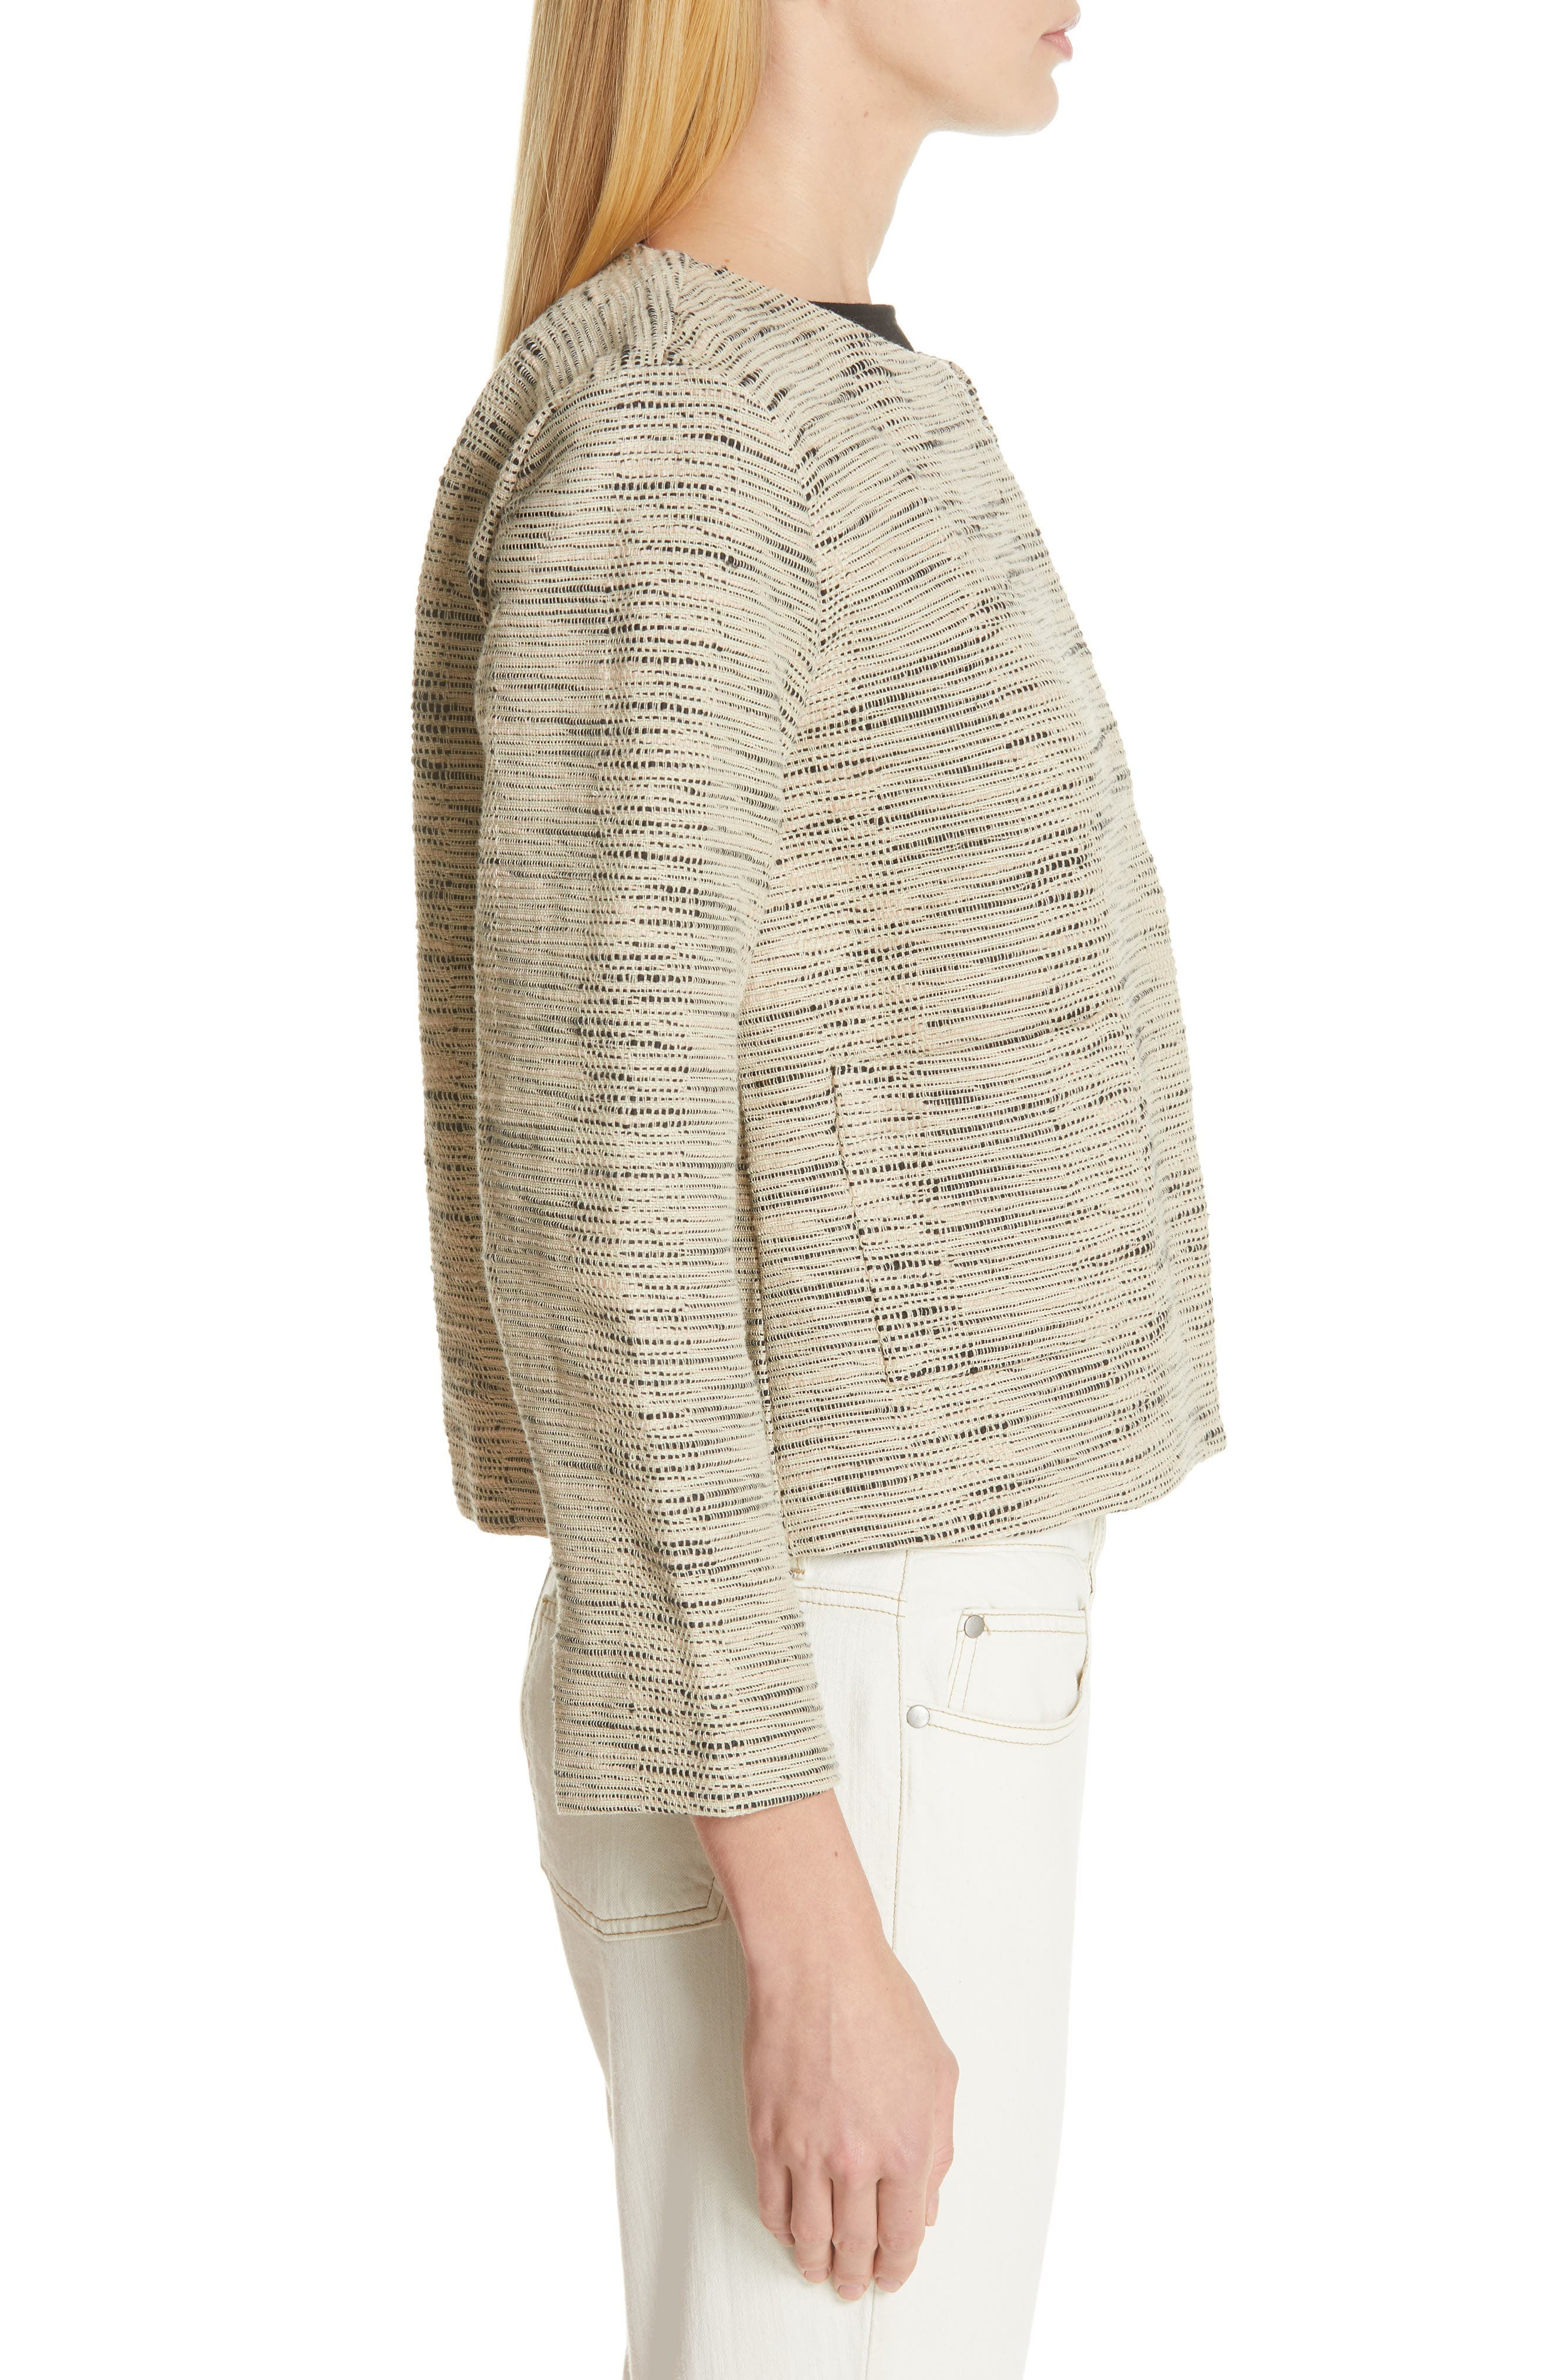 EILEEN FISHER, Woven Cotton Jacket, Alternate thumbnail 4, color, NATURAL